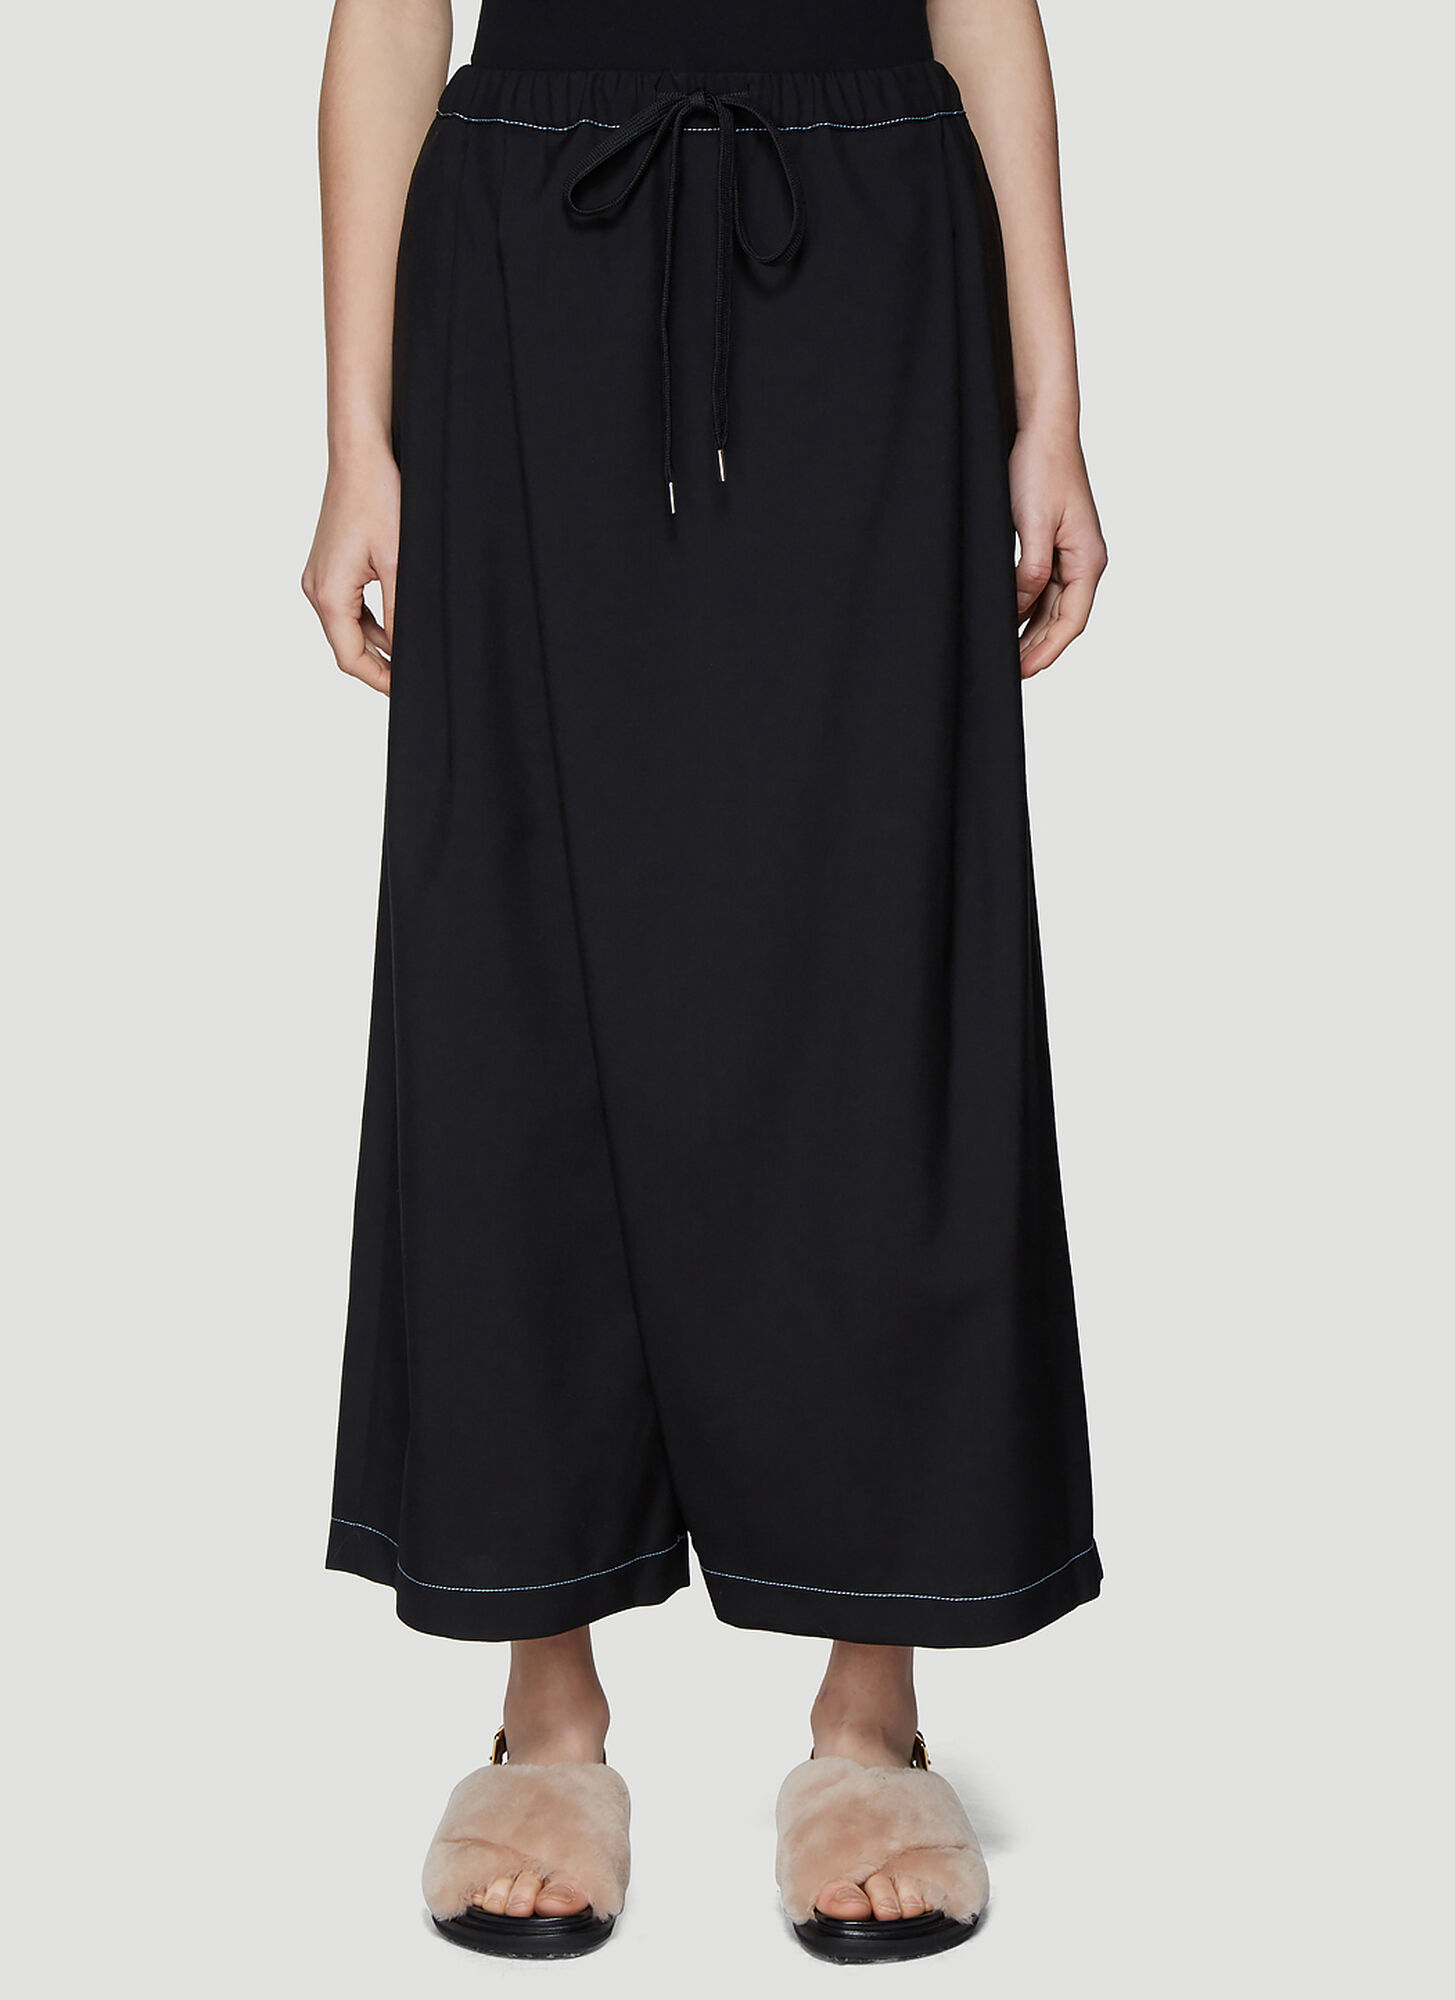 Marni Tropical Wool Wide Leg Pants in Black